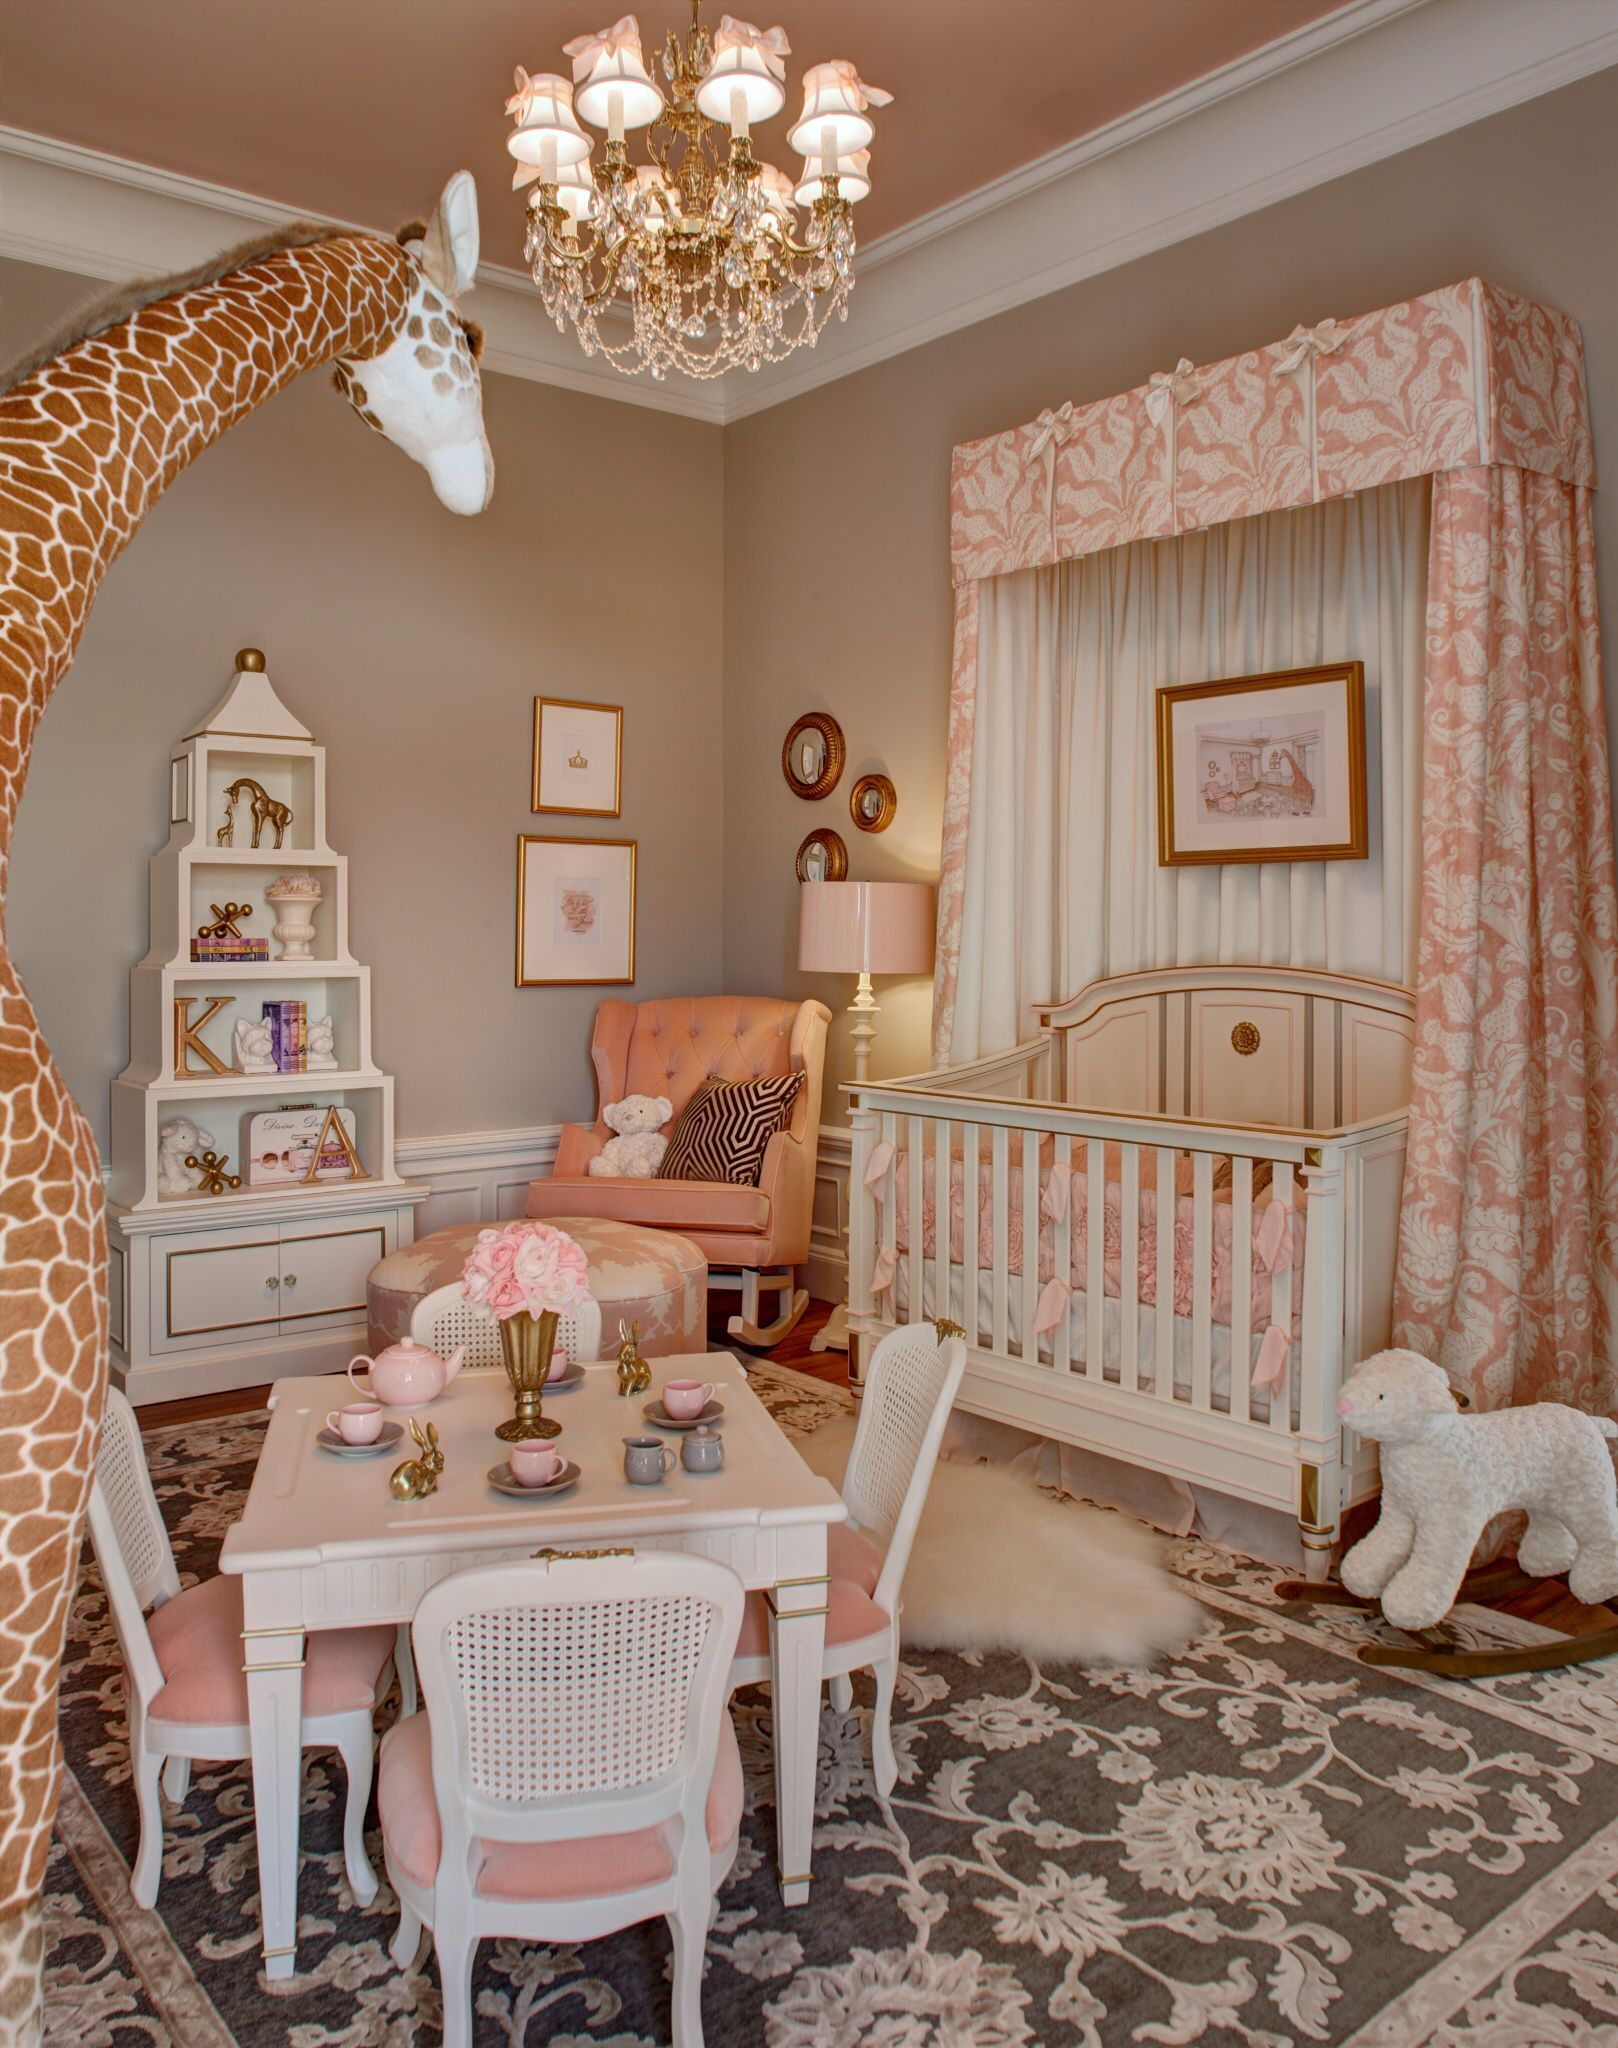 Girls Nursery Design By Kristin Ashley Interiors For The Mansion In May  2014 At Blairsden.